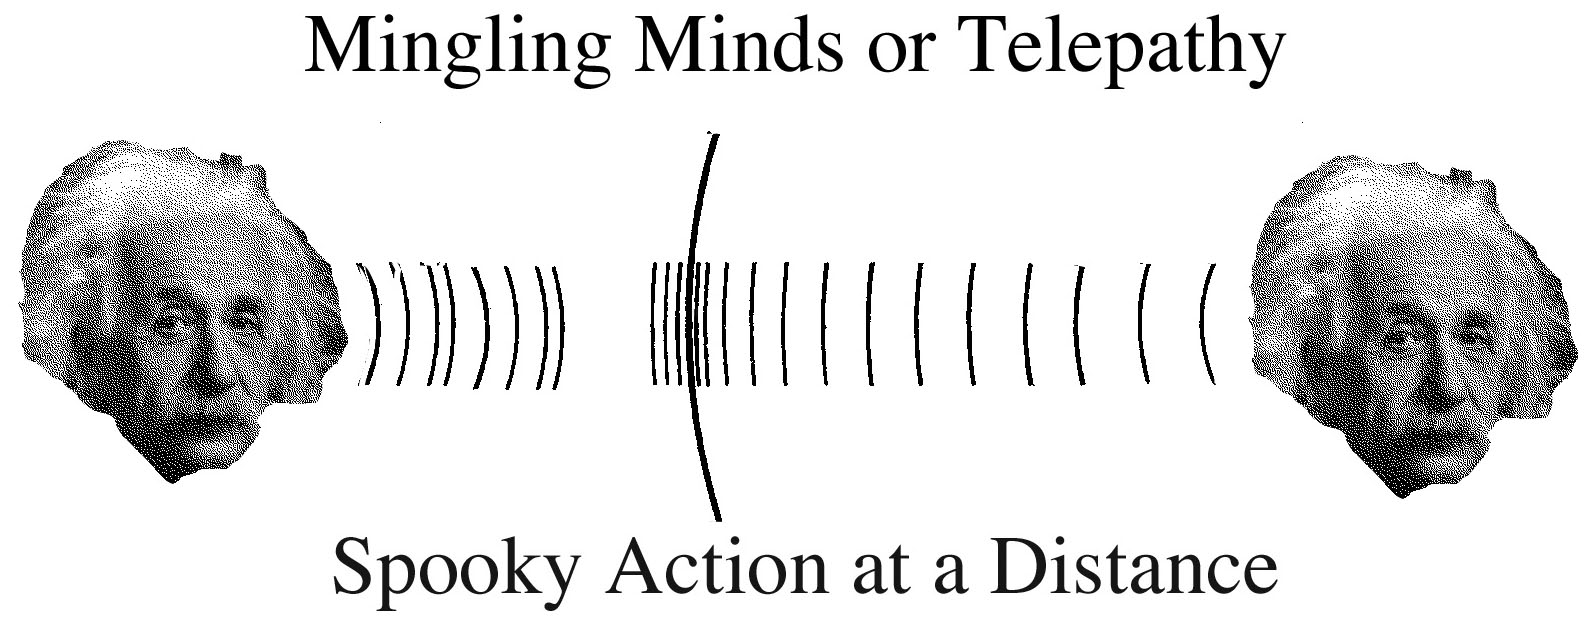 Telepathy = Sympathetic Vibration